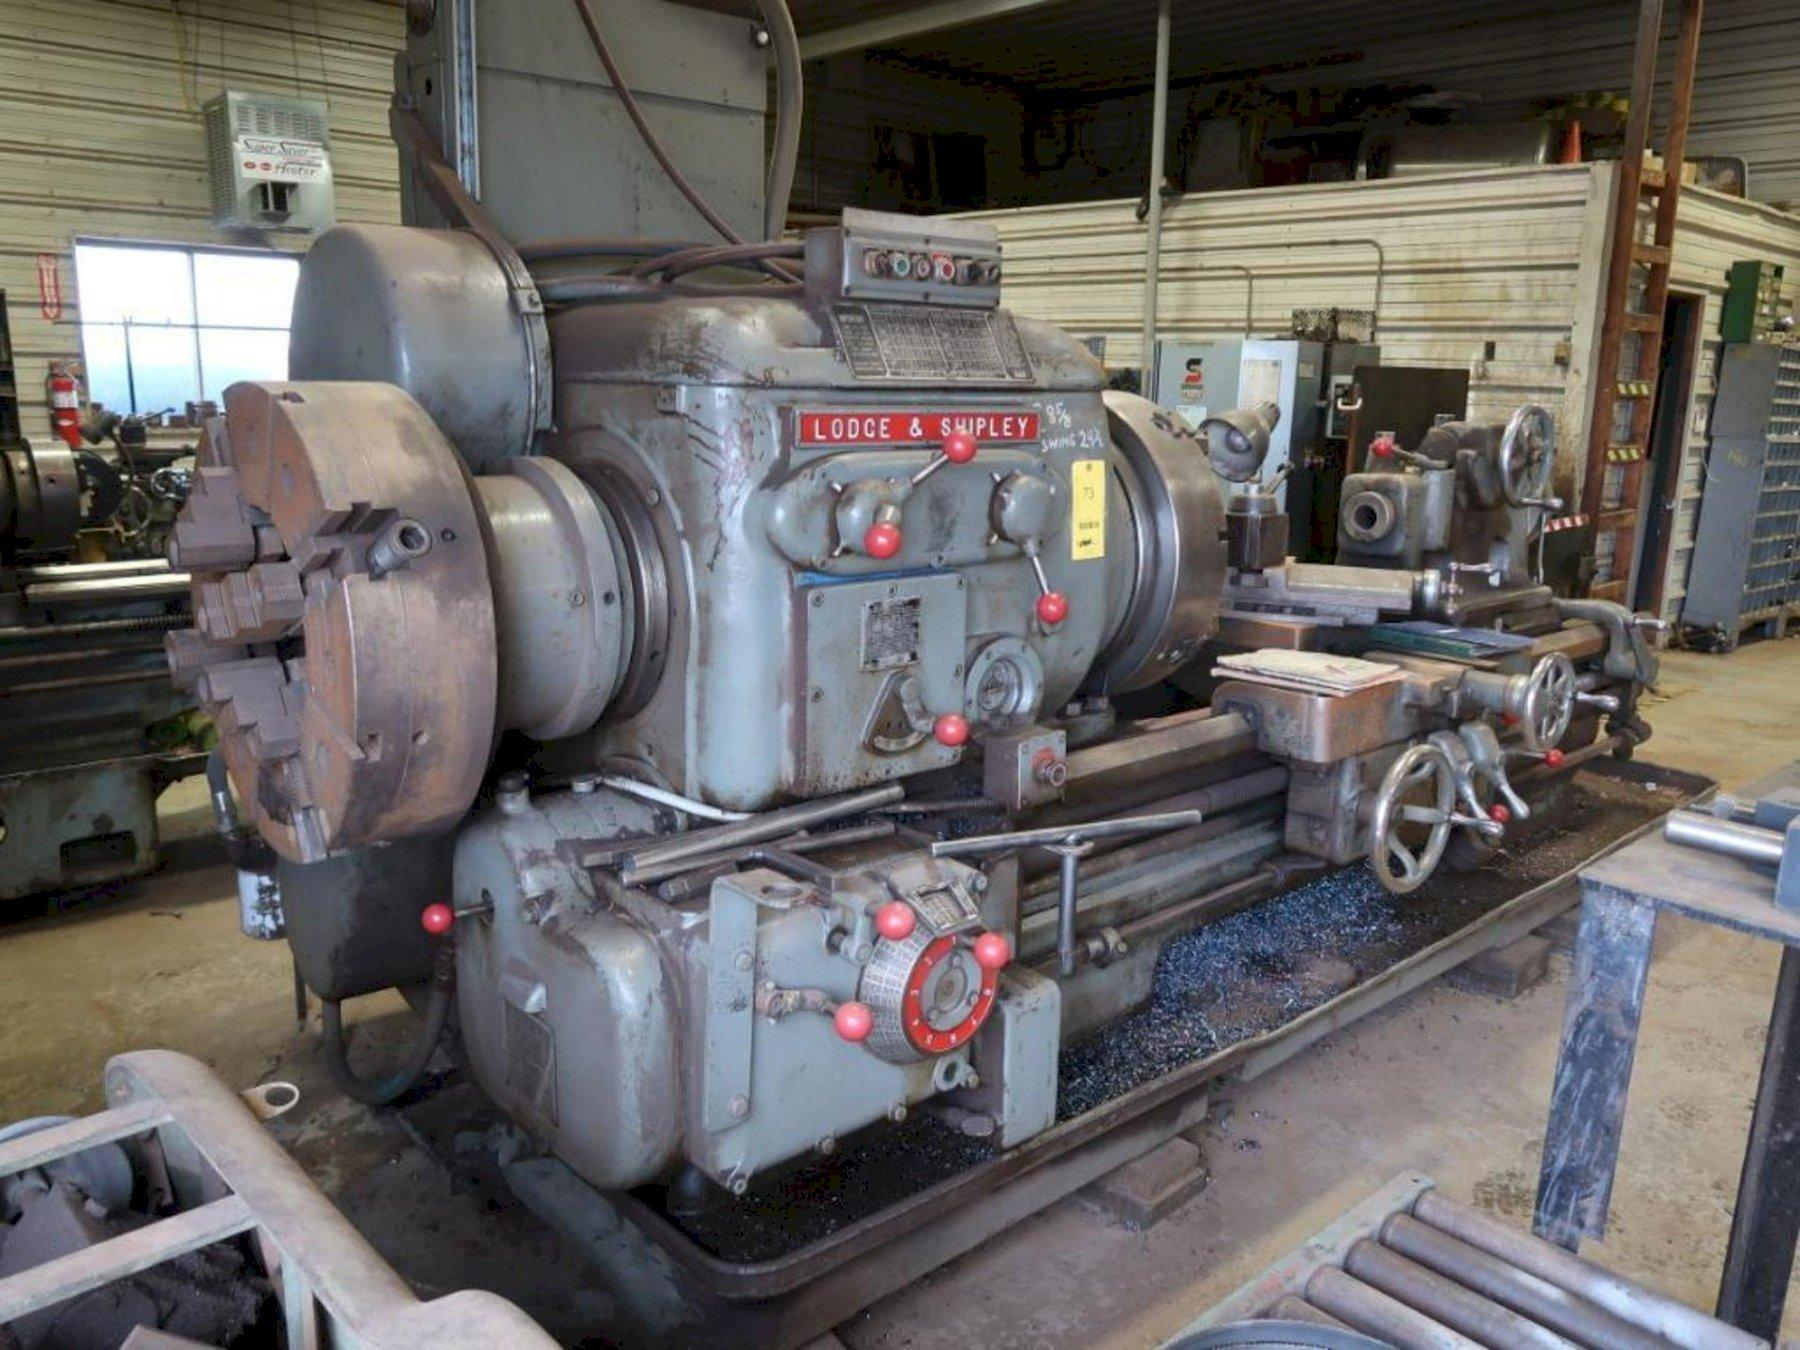 30' X 60' LODGE & SHIPLEY HOLLOW SPINDLE ENGINE LATHE: STOCK #73427